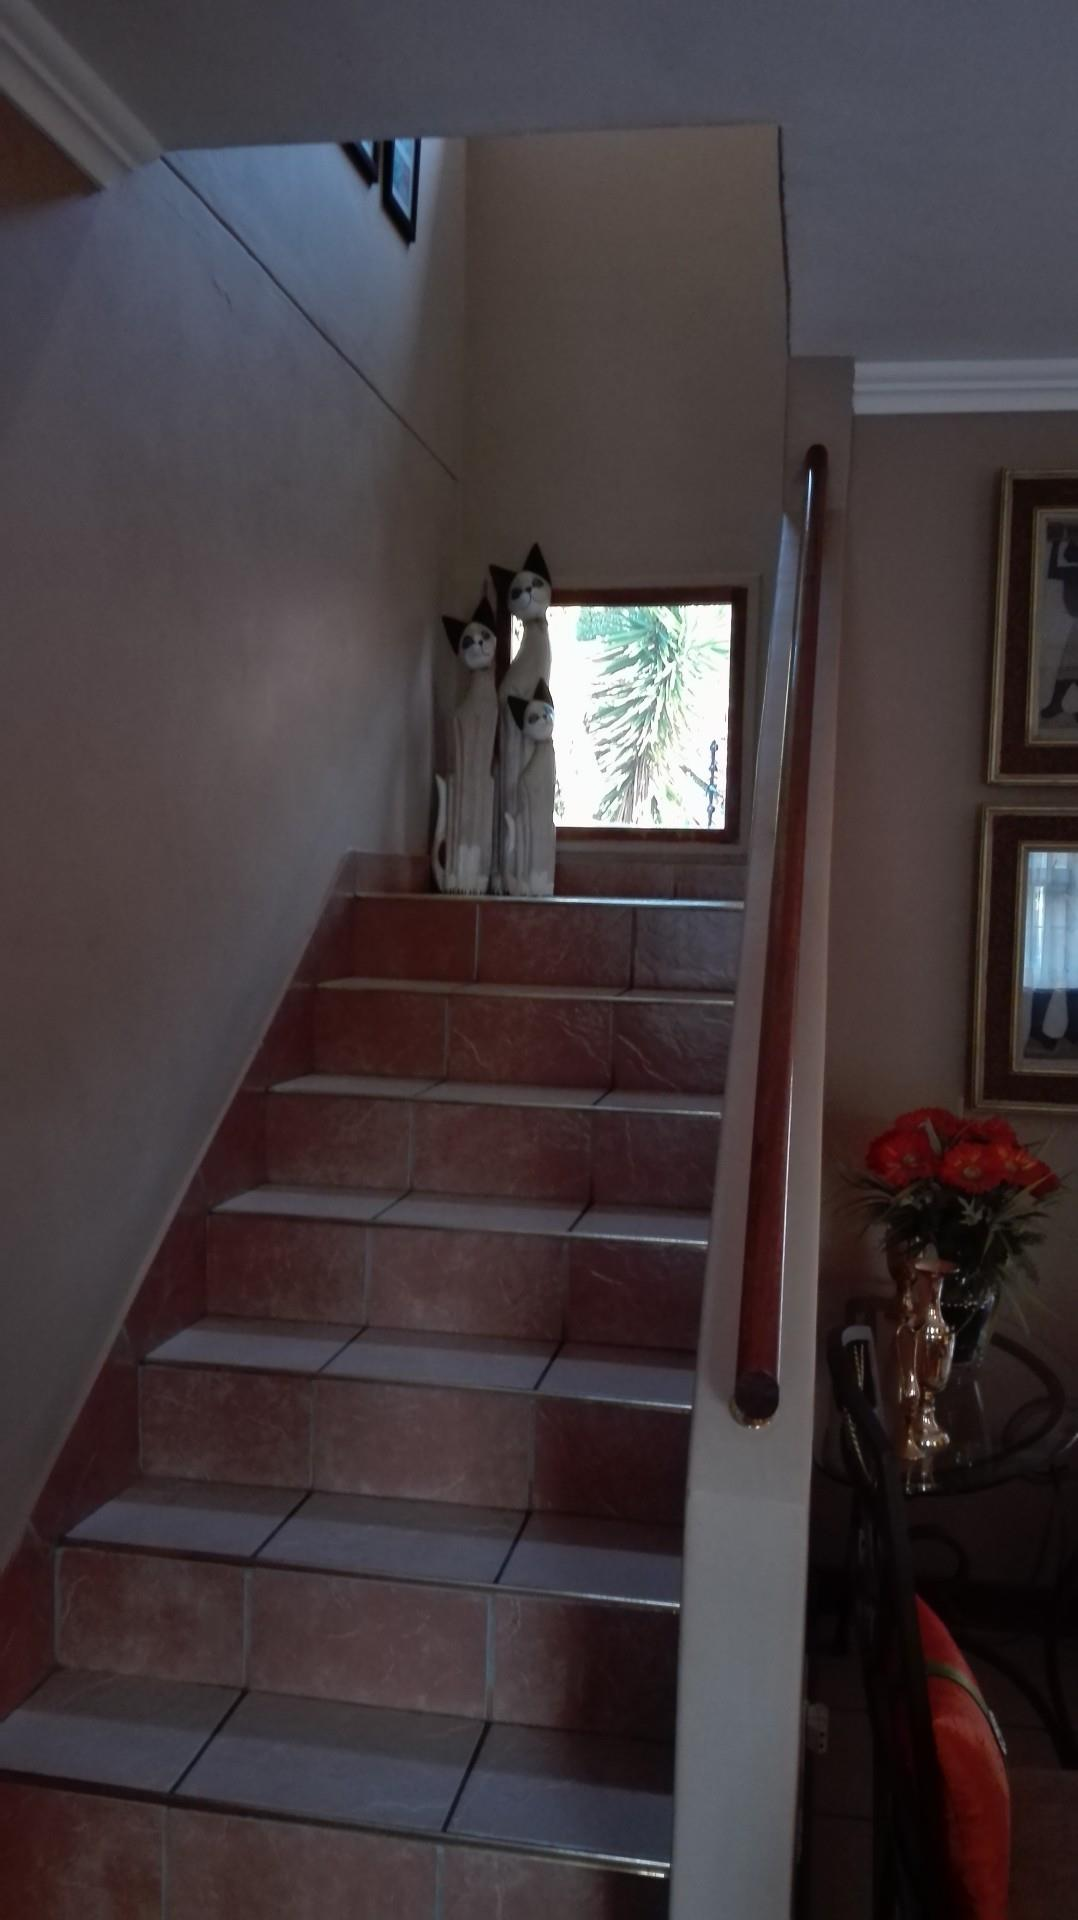 3 Bedroom Town house For Sale in Louis Trichardt